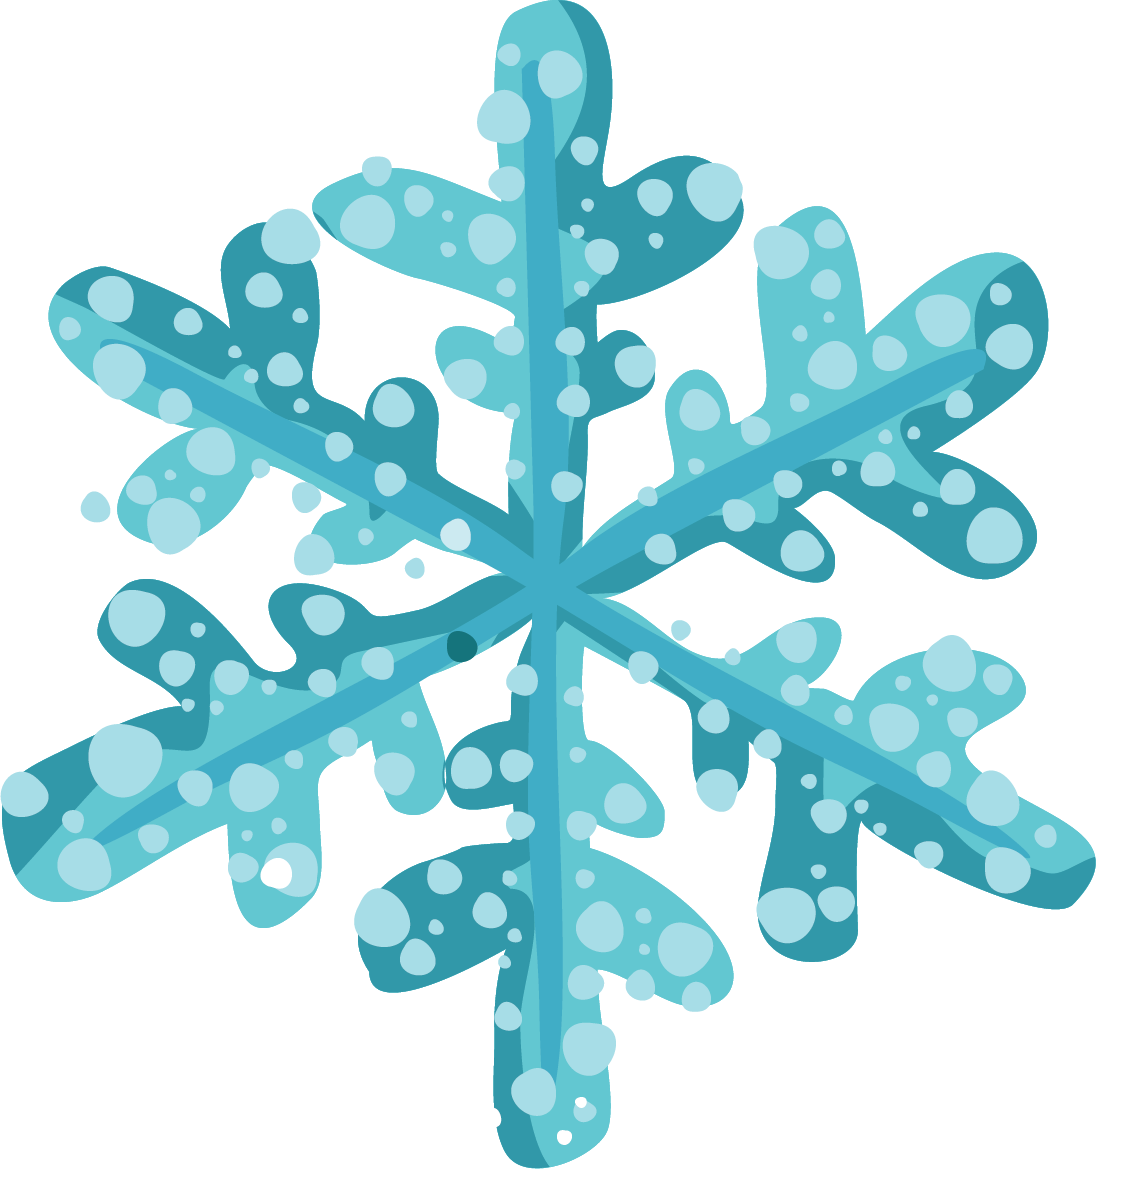 Green snowflake clipart clip art free stock Free christmas snowflake clipart snowflakes for christmas - Clipartix clip art free stock